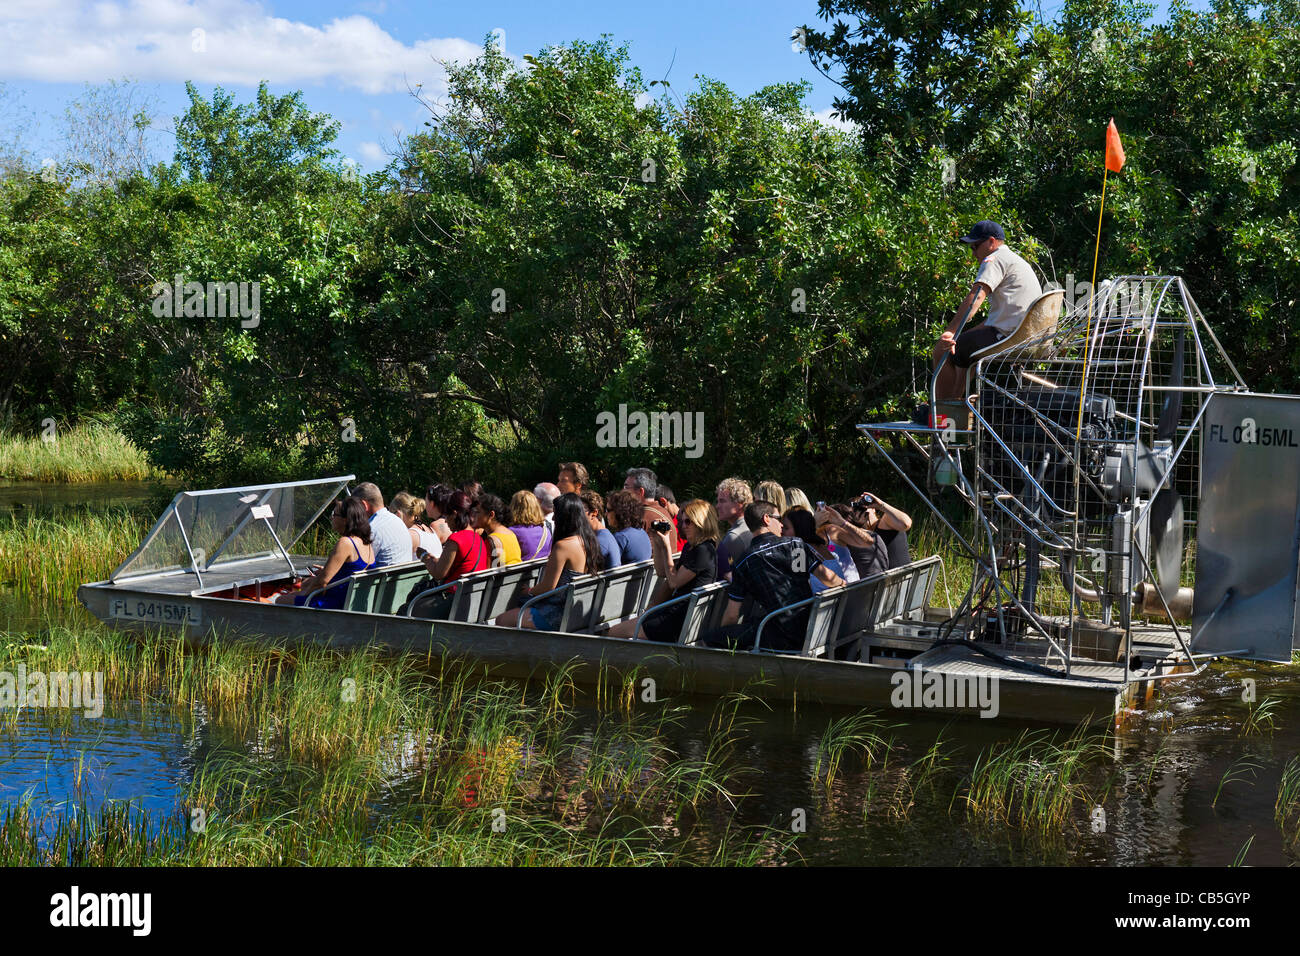 Airboat Tour At Gator Park Airboat Tours On Highway 41